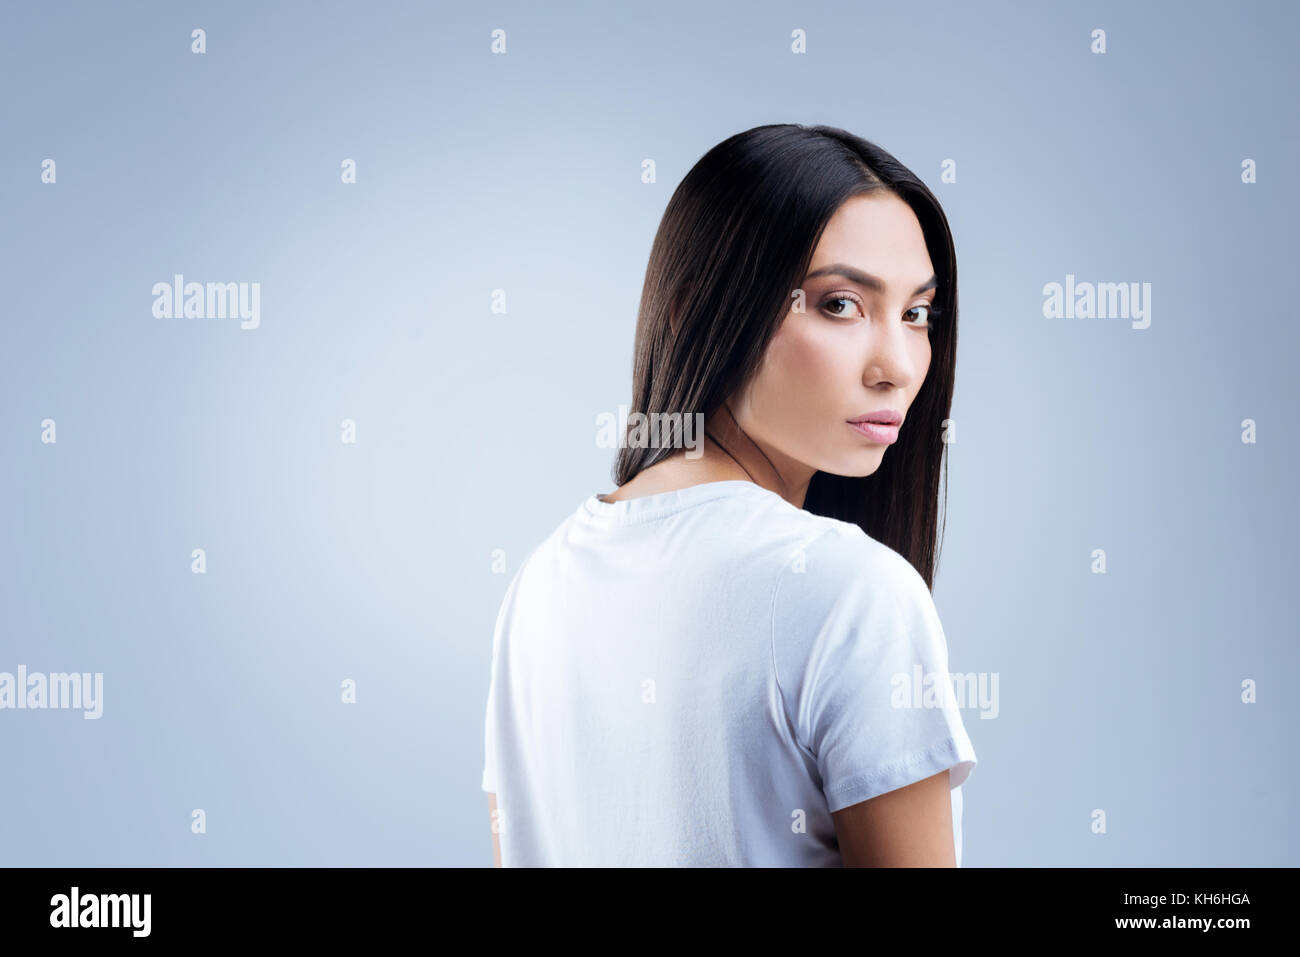 Shy Student Stock Photos Amp Shy Student Stock Images Alamy